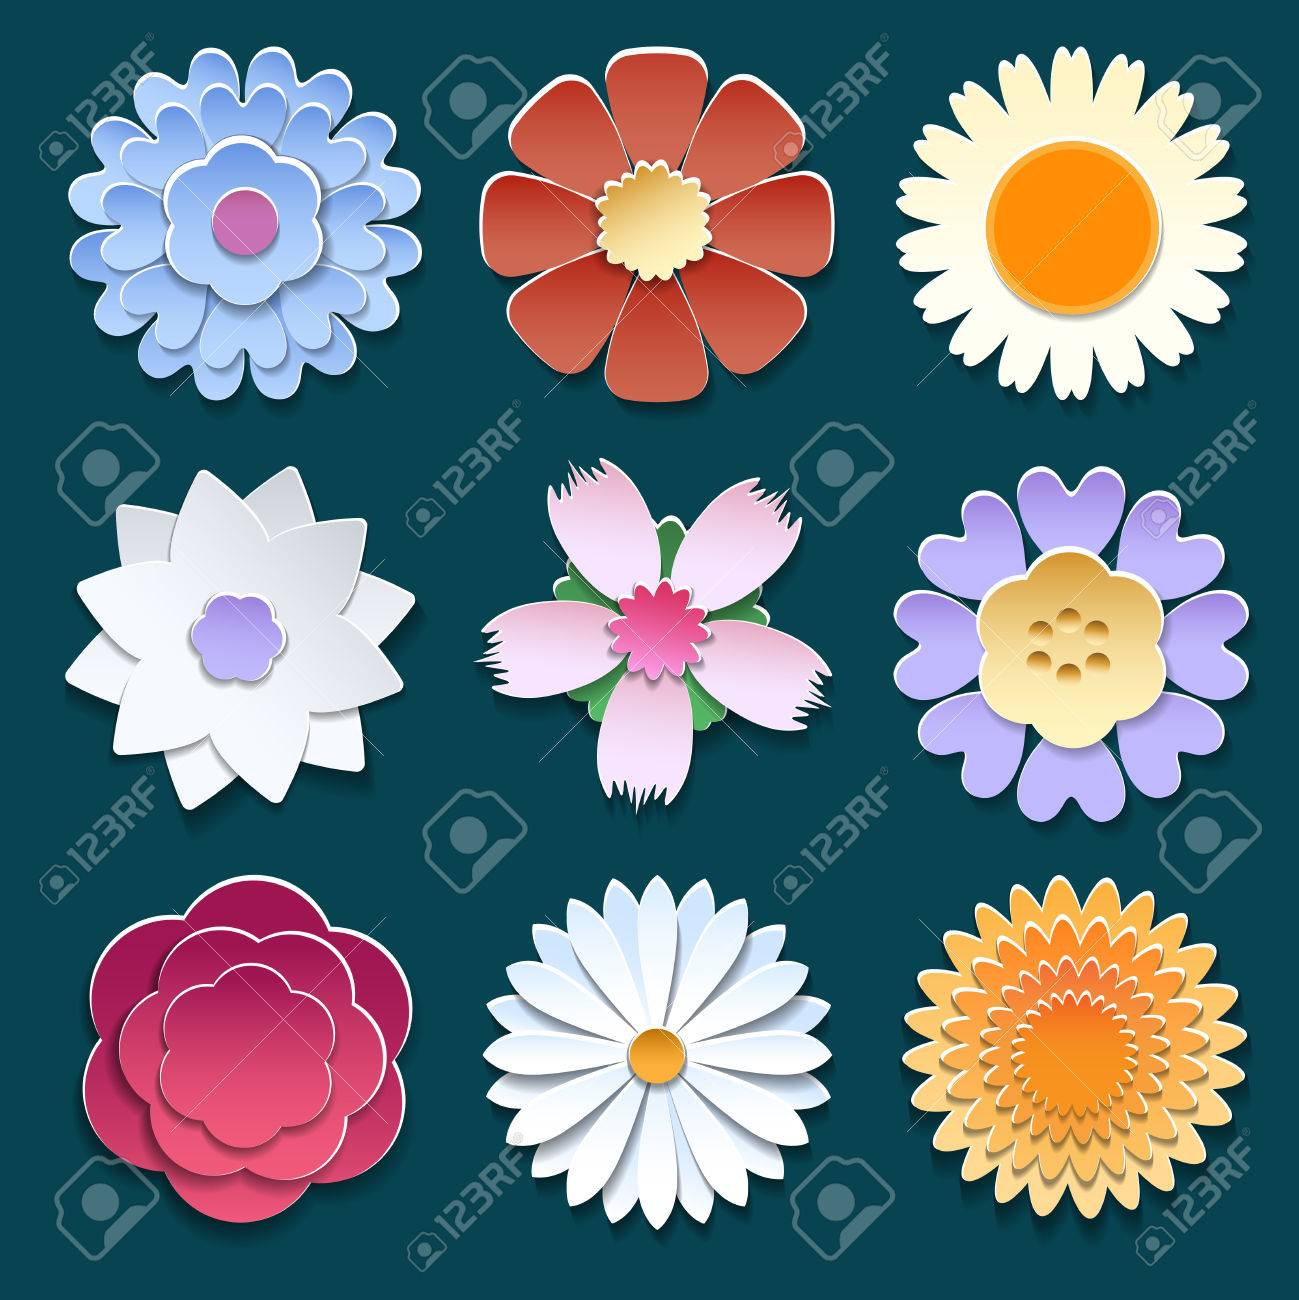 Vector Paper Cut 3d Origami Flowers Set Royalty Free Cliparts